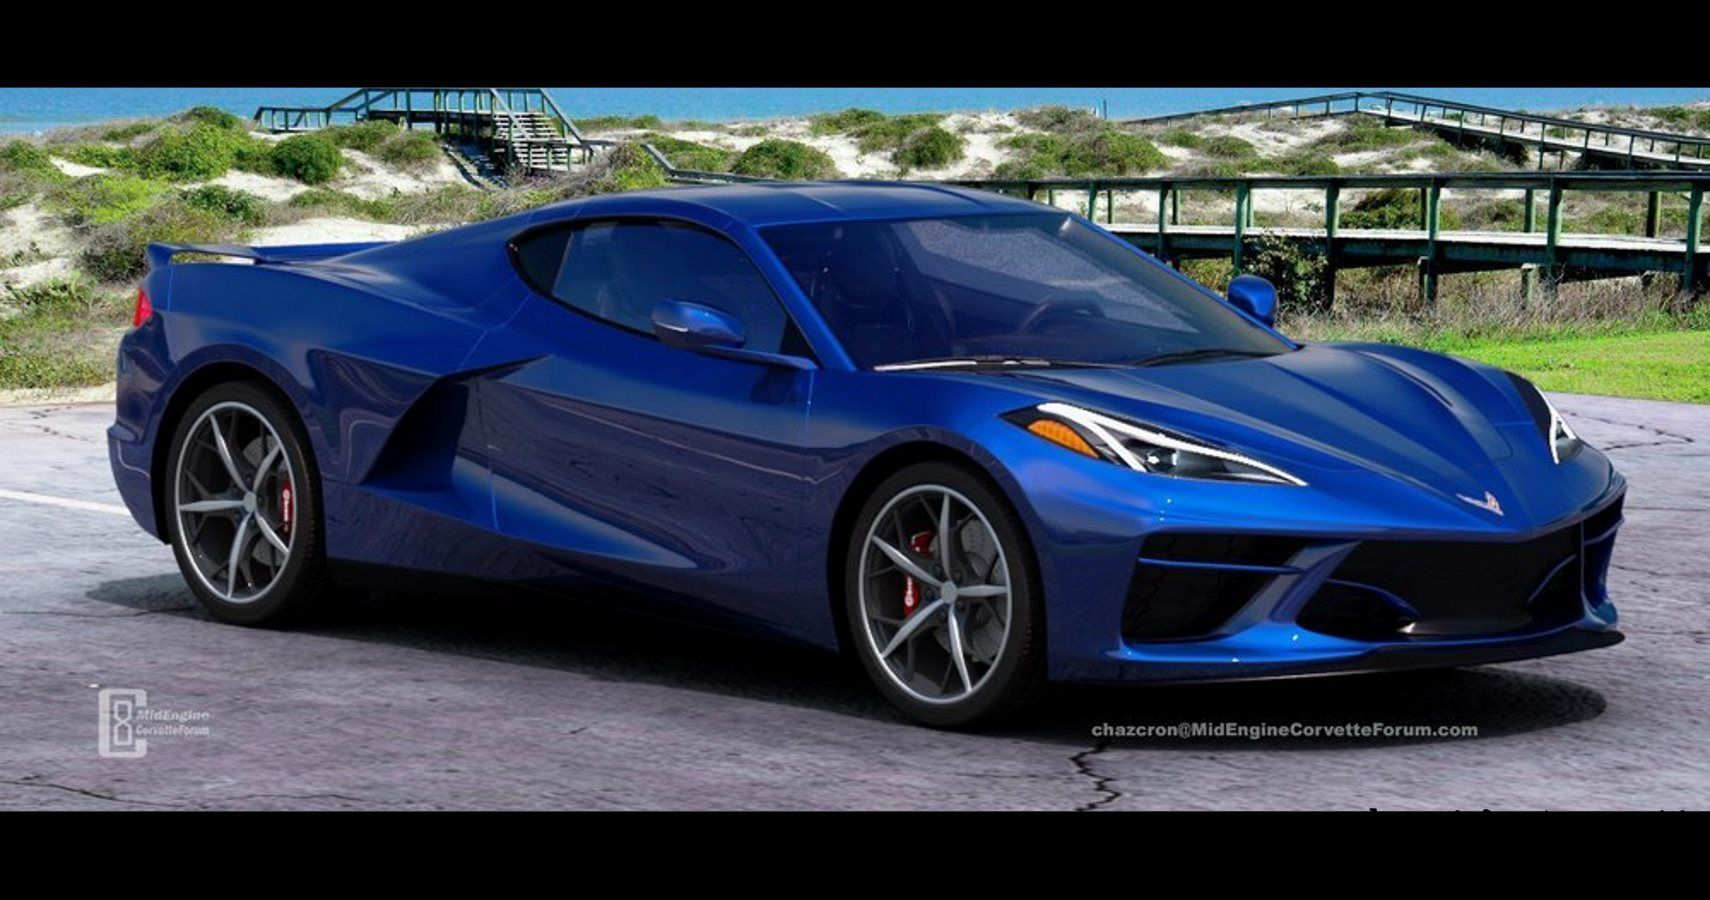 New Renders Imagine Mid-Engine Corvette Without Exposed ...